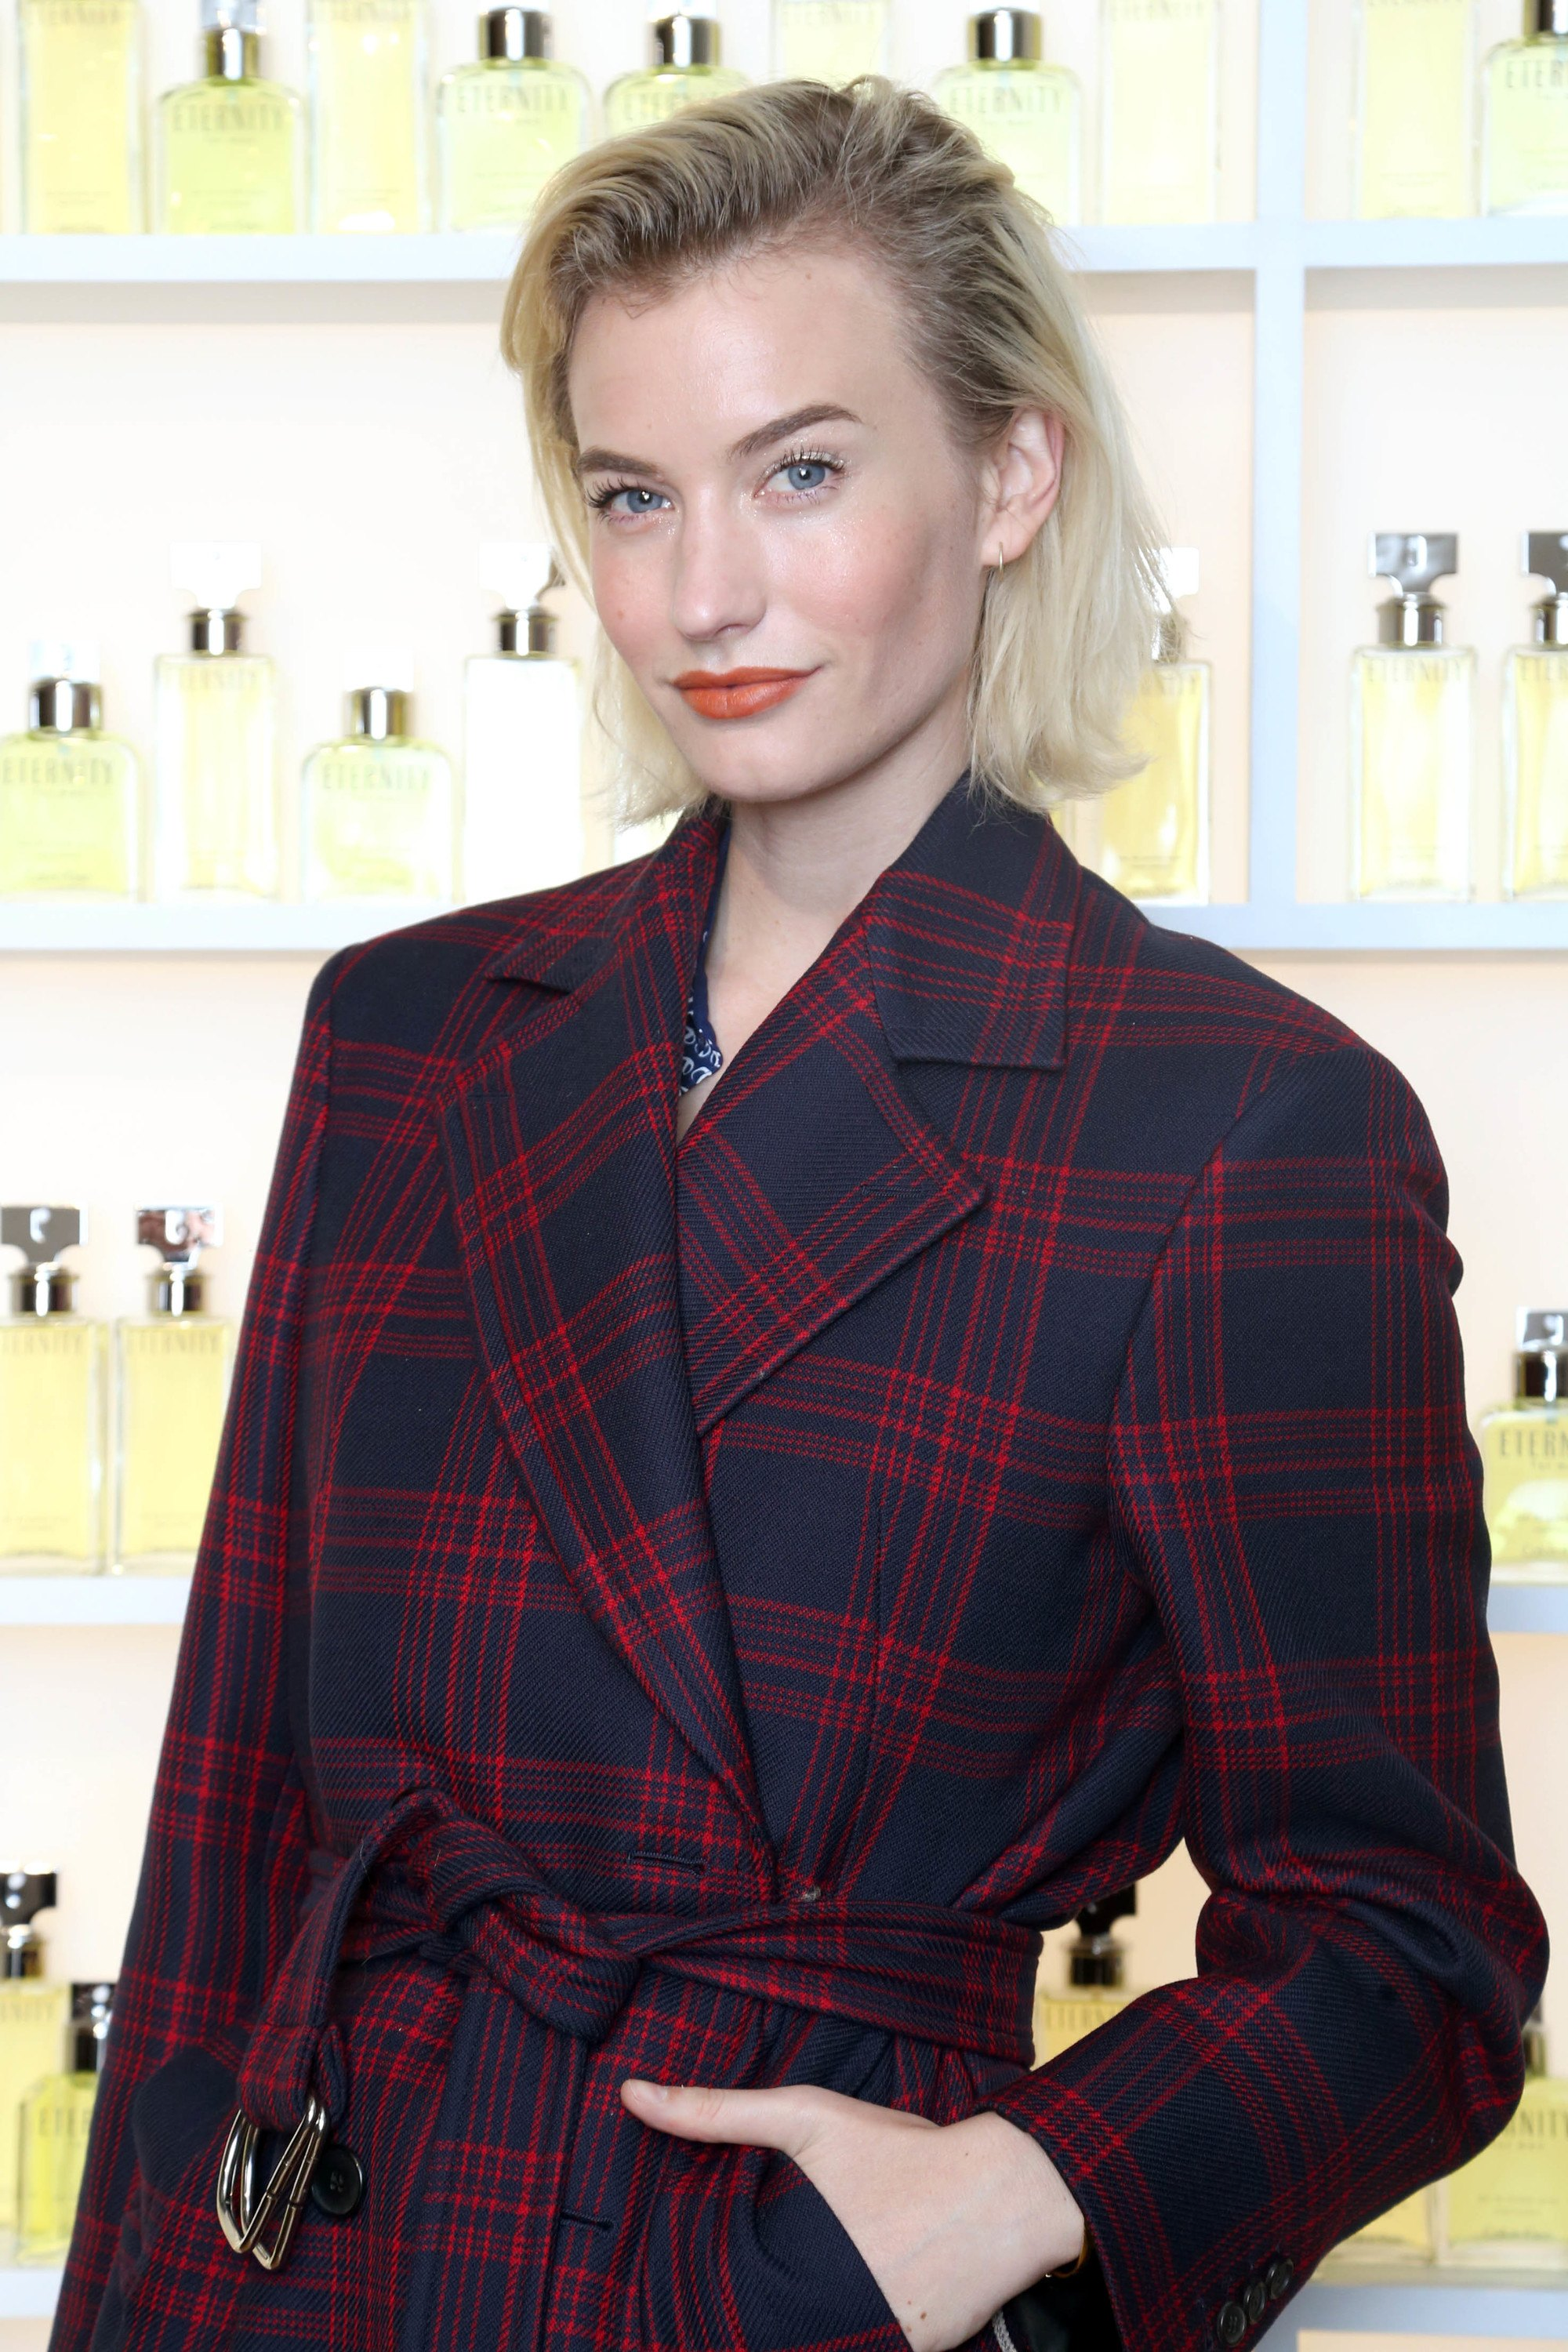 How to style thin hair: Zanita Whittington with fine platinum blonde hair styled into a swept-back slick hairstyle, wearing tartan jacket on posing on the red carpet